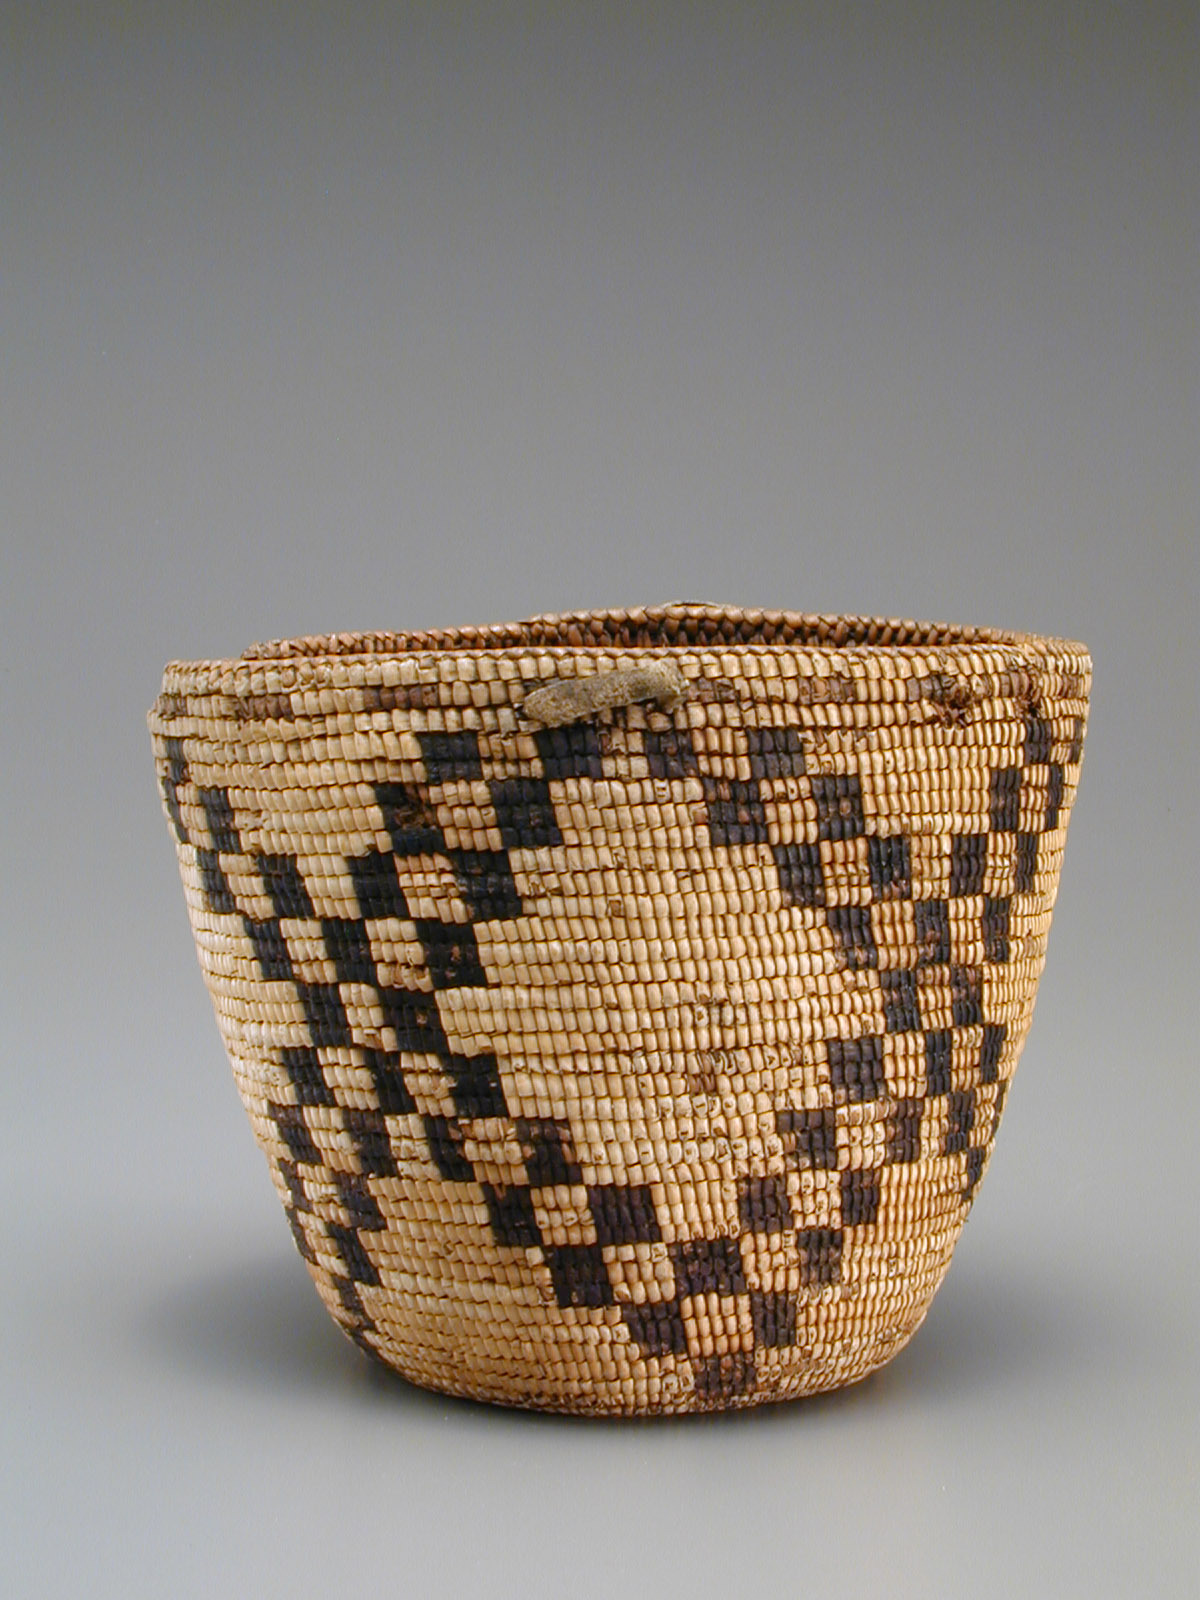 Object of The Week: Coiled Basket